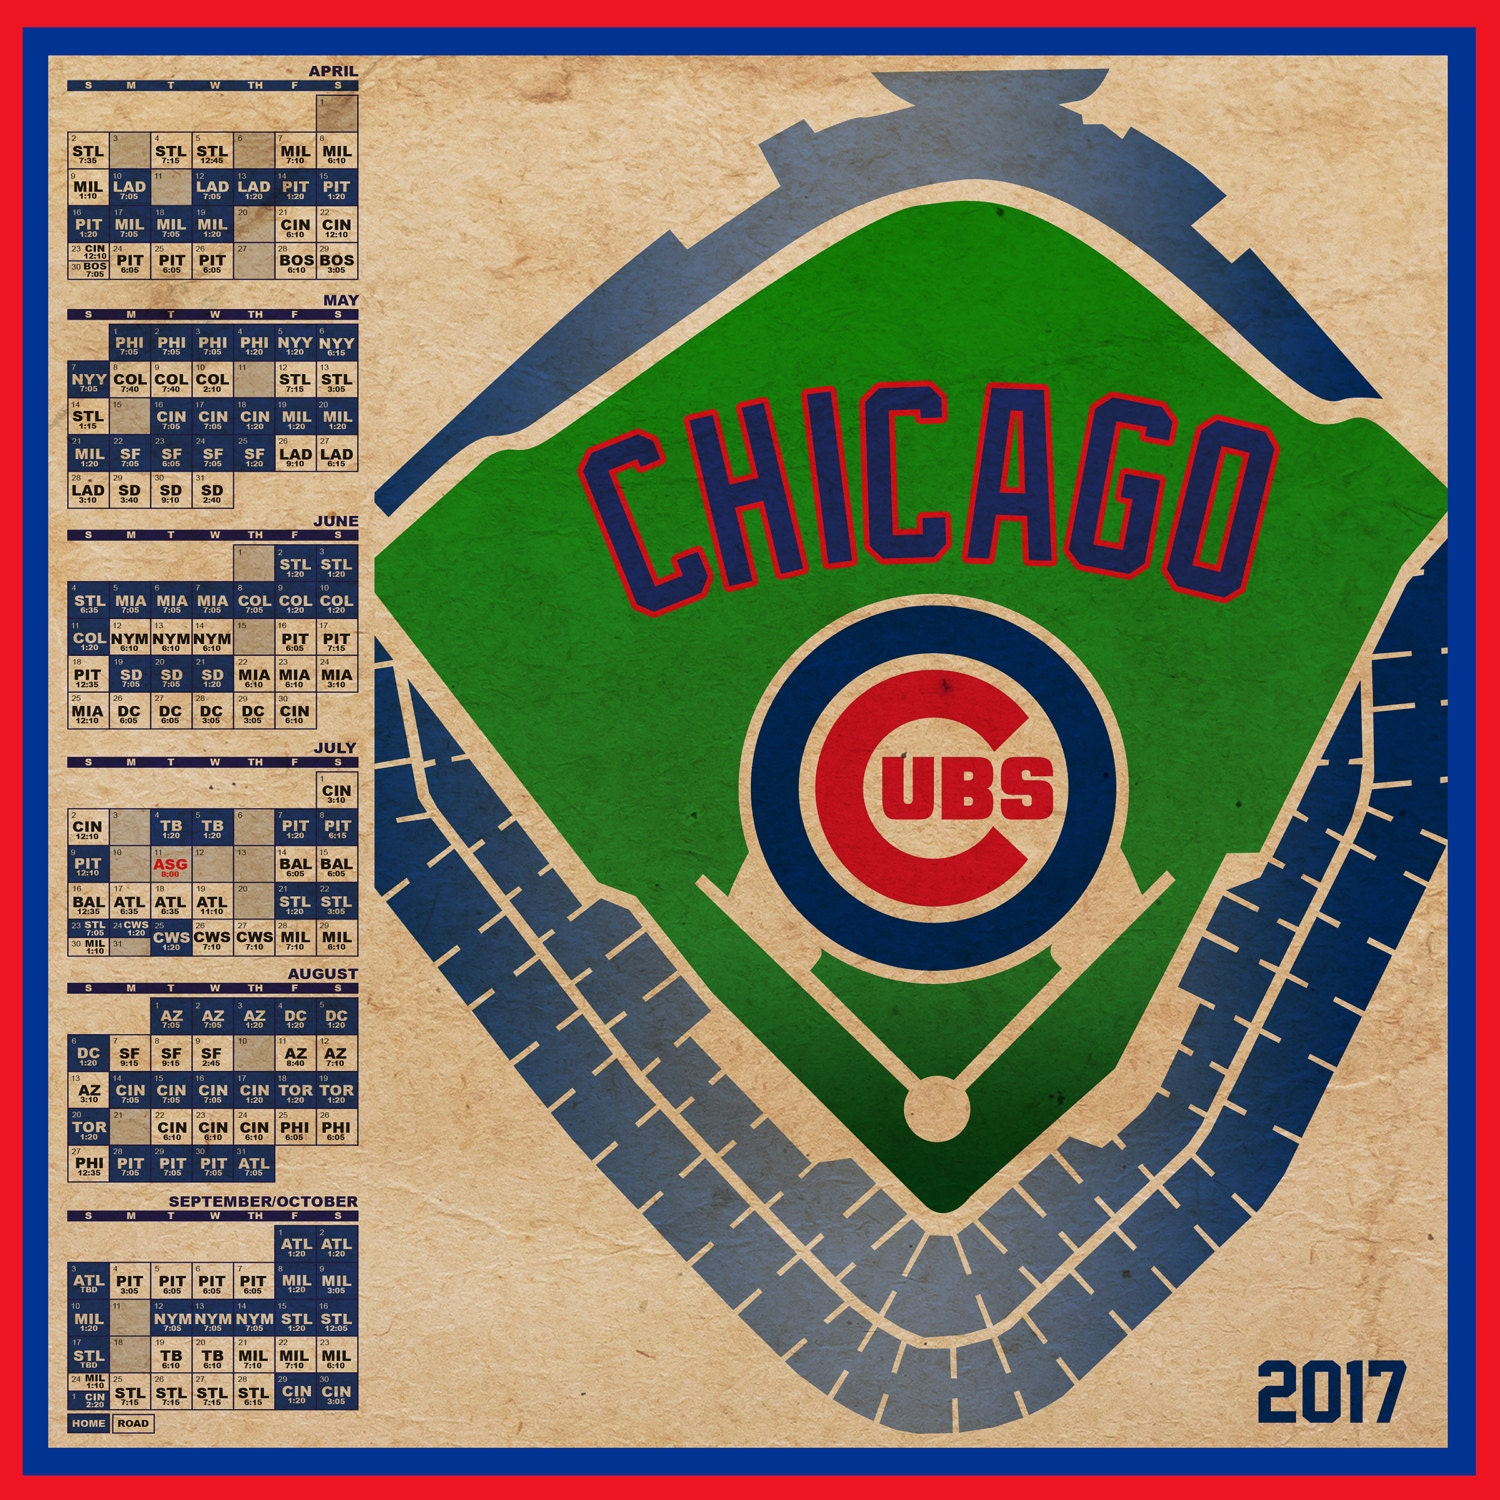 Cubs Home Games Schedule